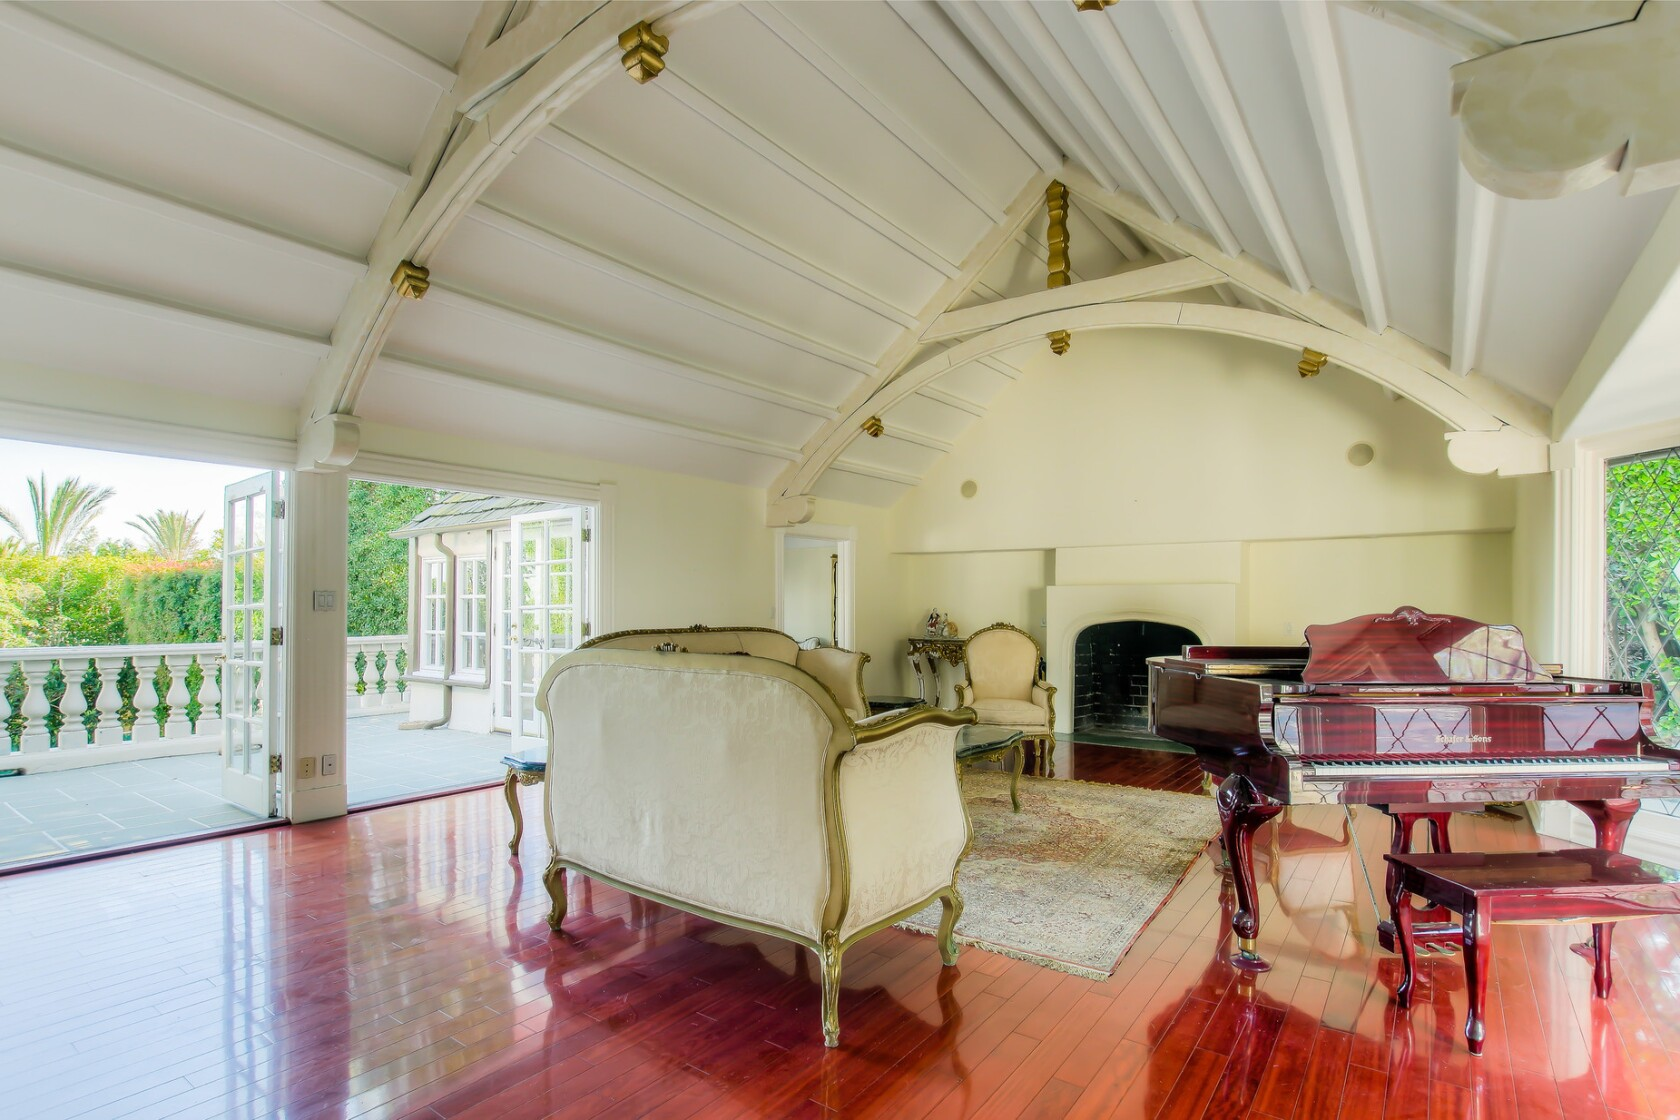 Bel-Air abode once owned by comedian Ed McMahon comes to